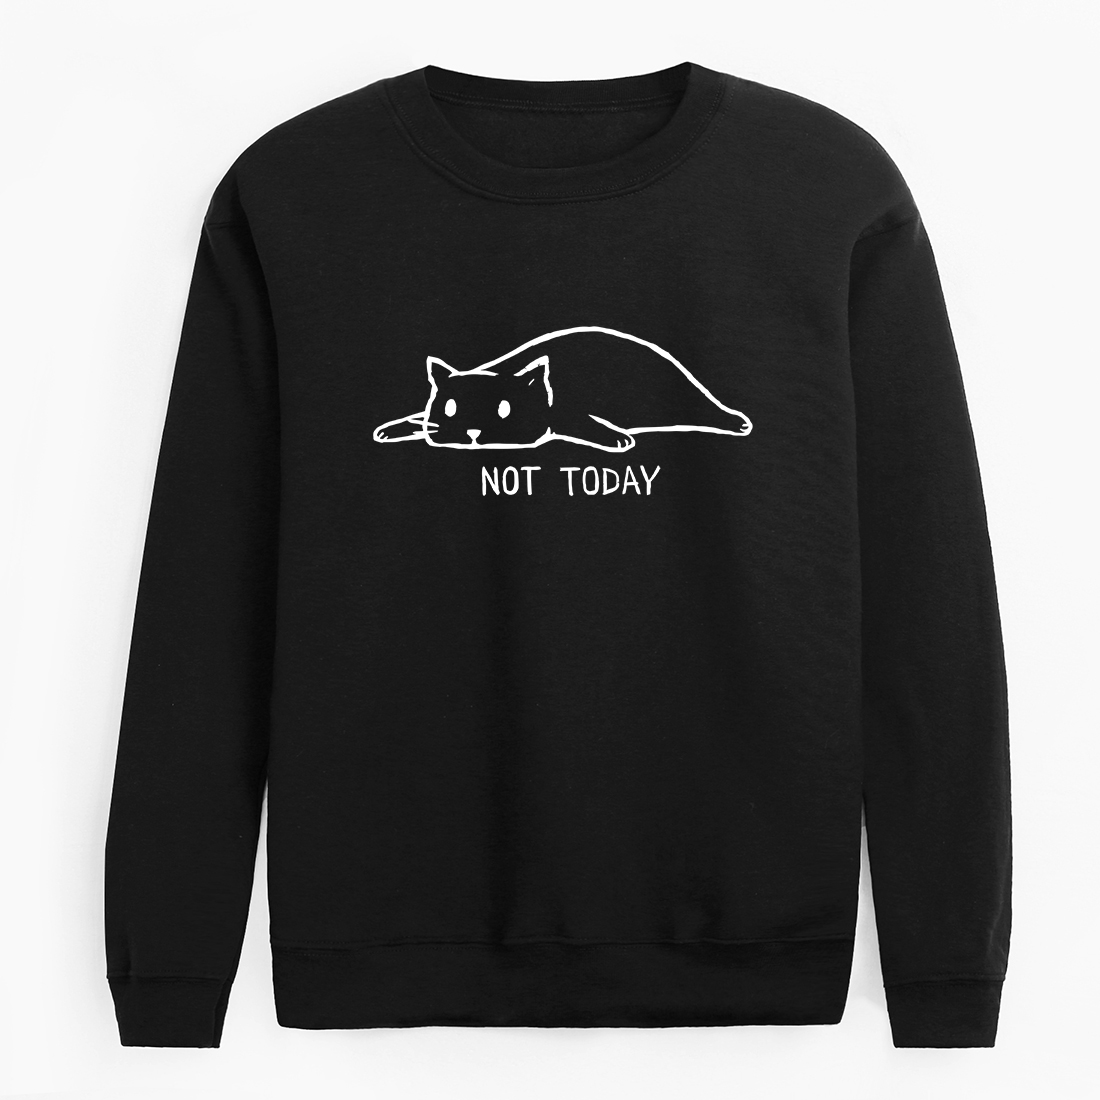 2019 Hot Sale Fashion Not Today Print Men's HoodiesLong Sleeve Round Neck Pullover Hipster Funny Lazy Cat Printed Sweatshirt